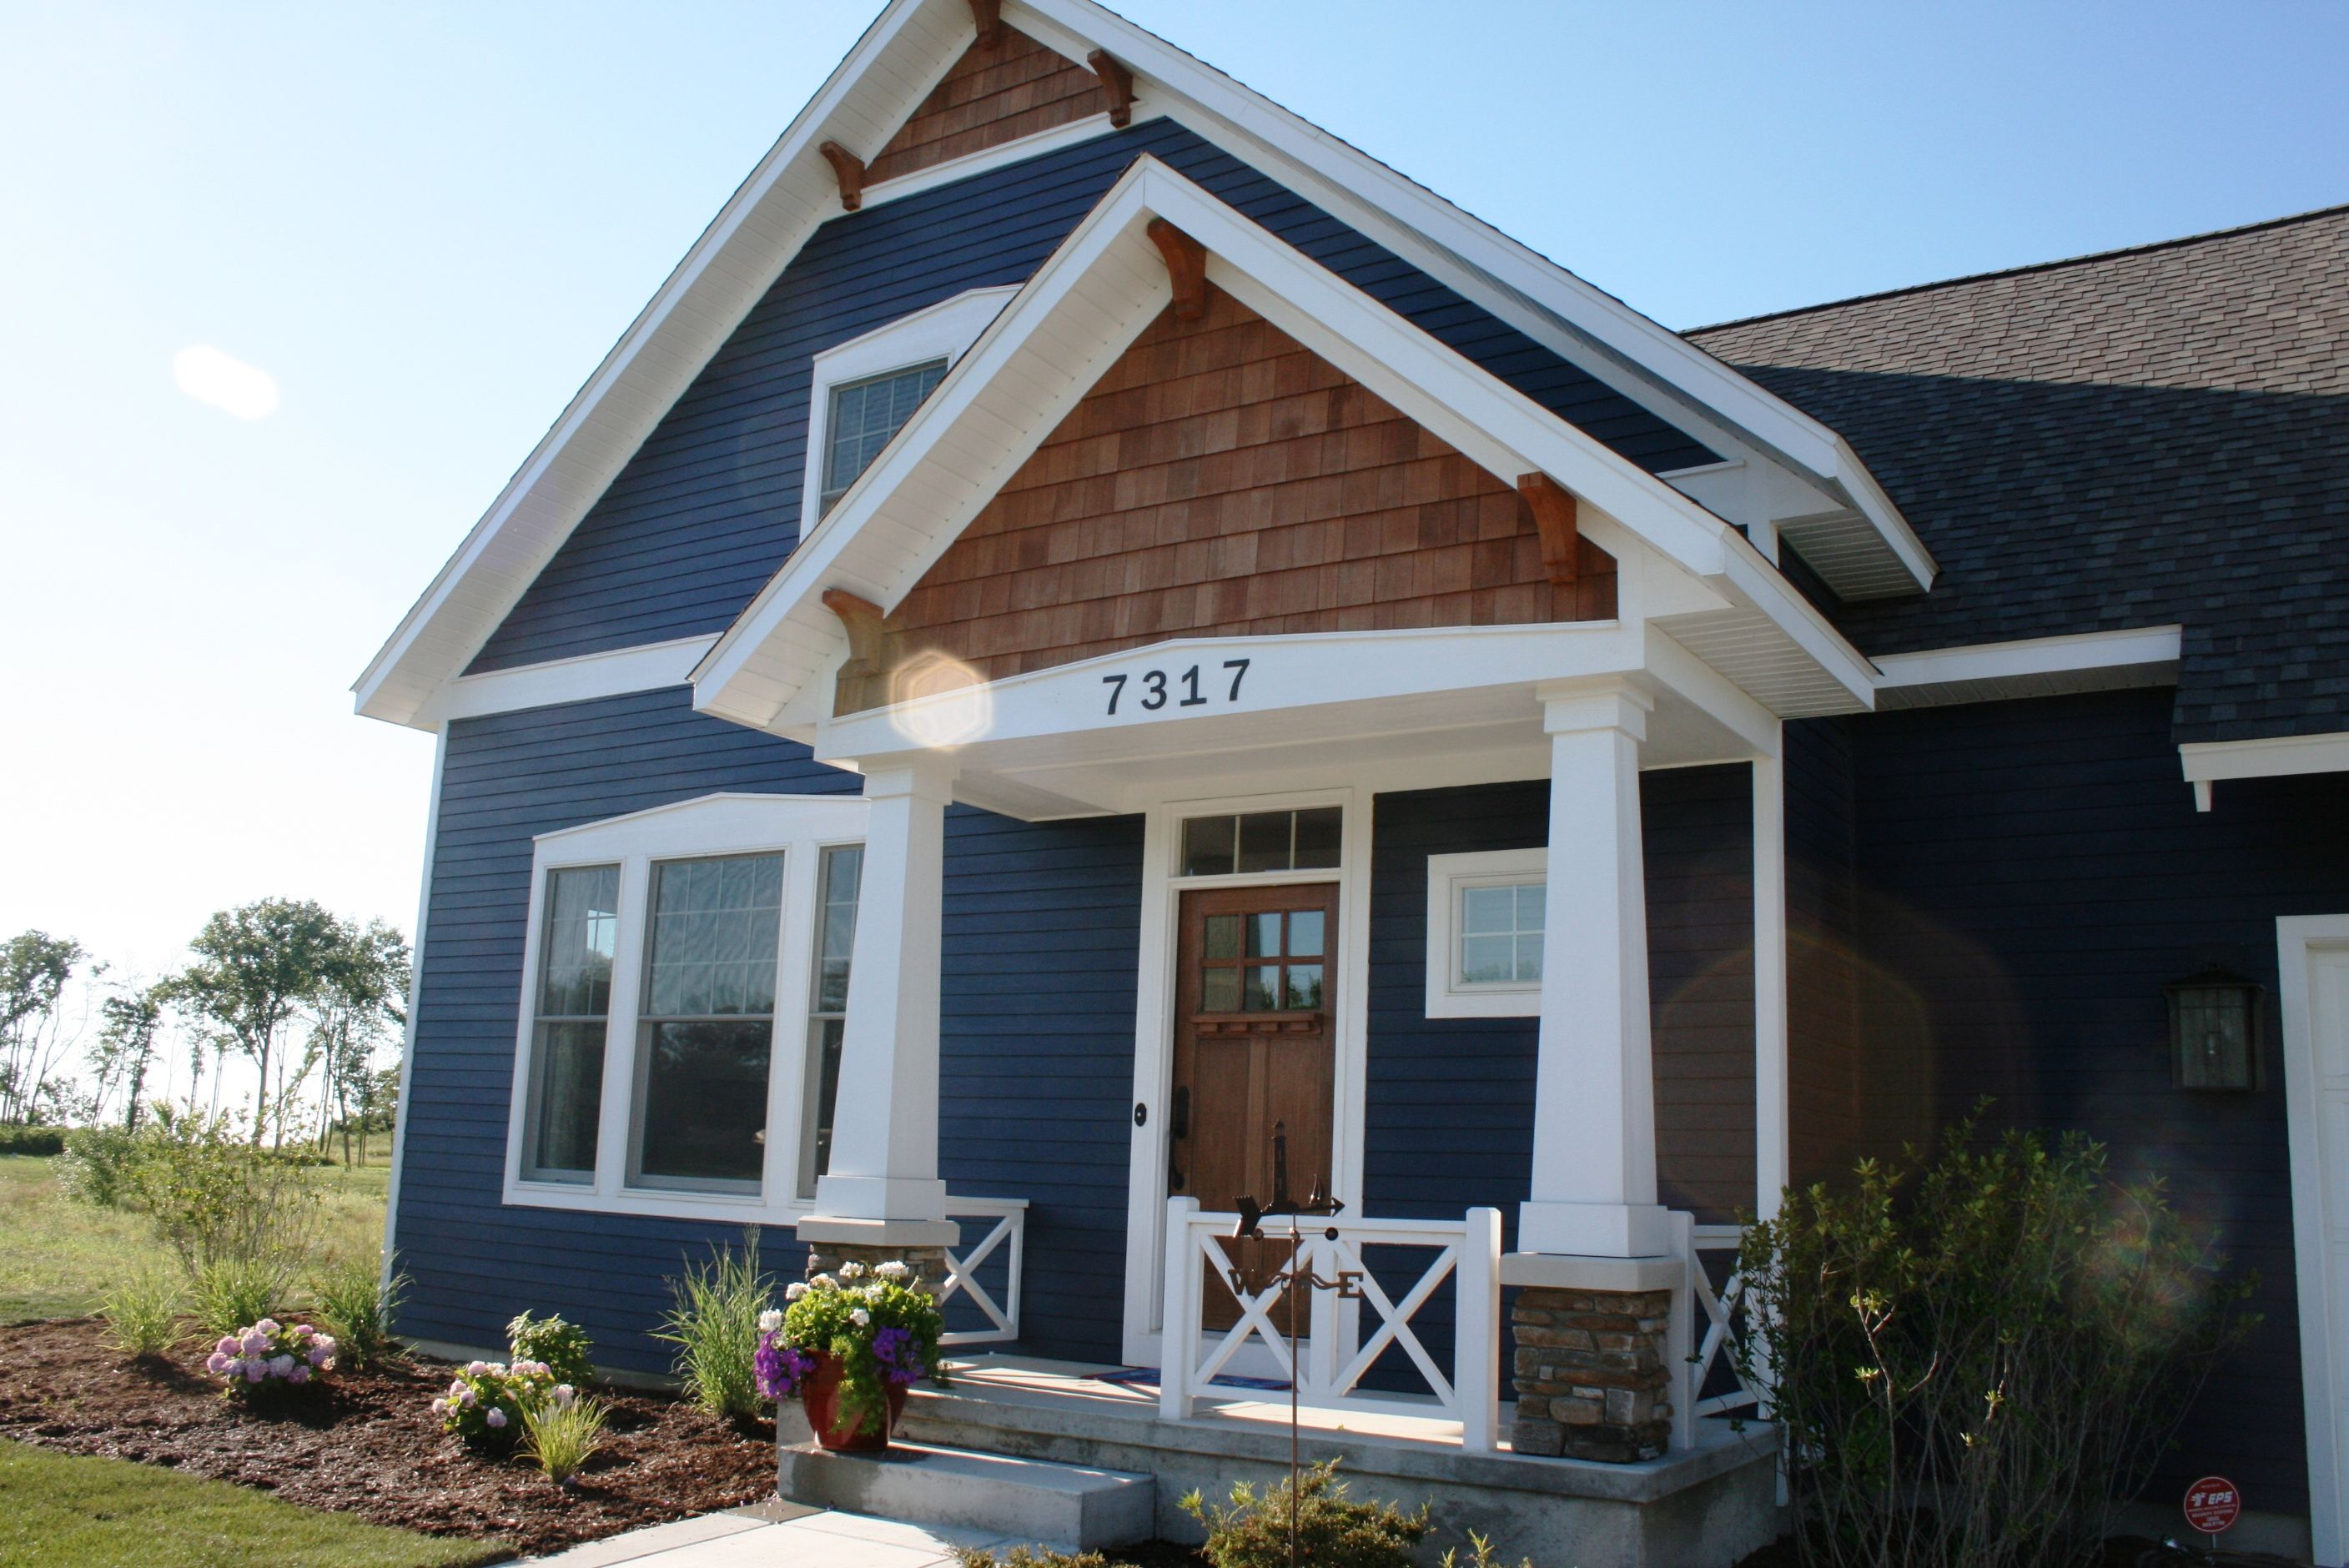 The Perfect Paint Schemes for House Exterior | Hardie board siding ...